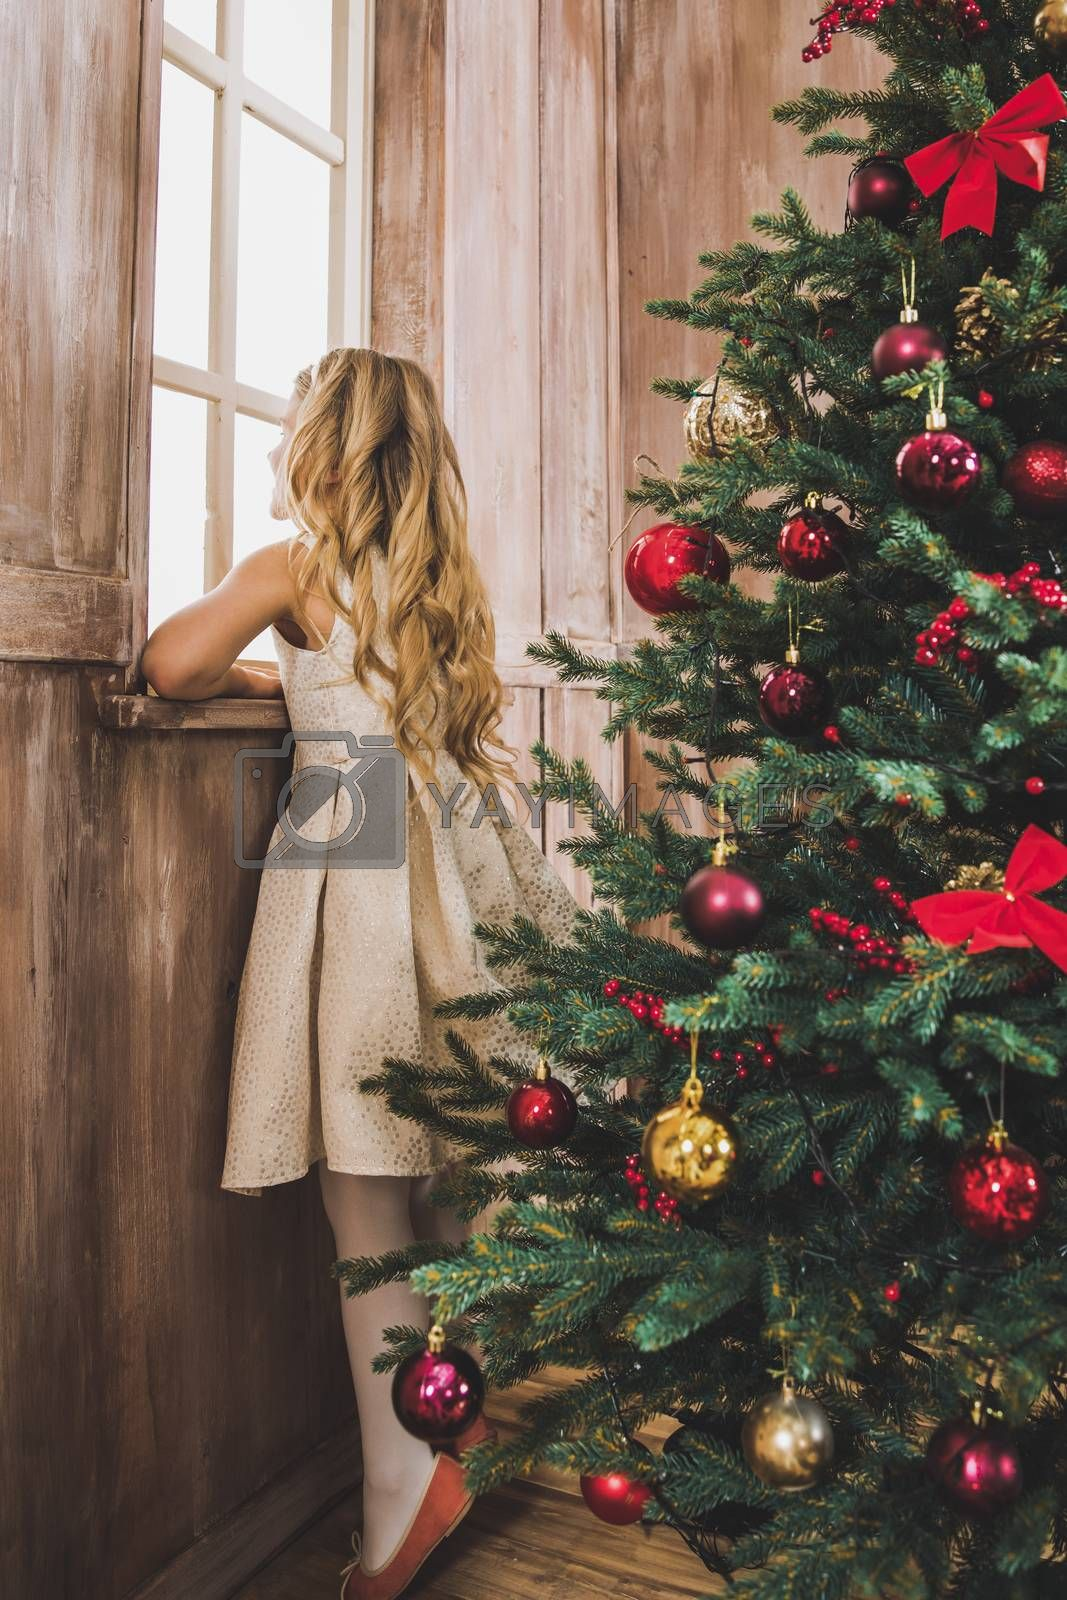 Cute little girl standing near Christmas tree and looking at window